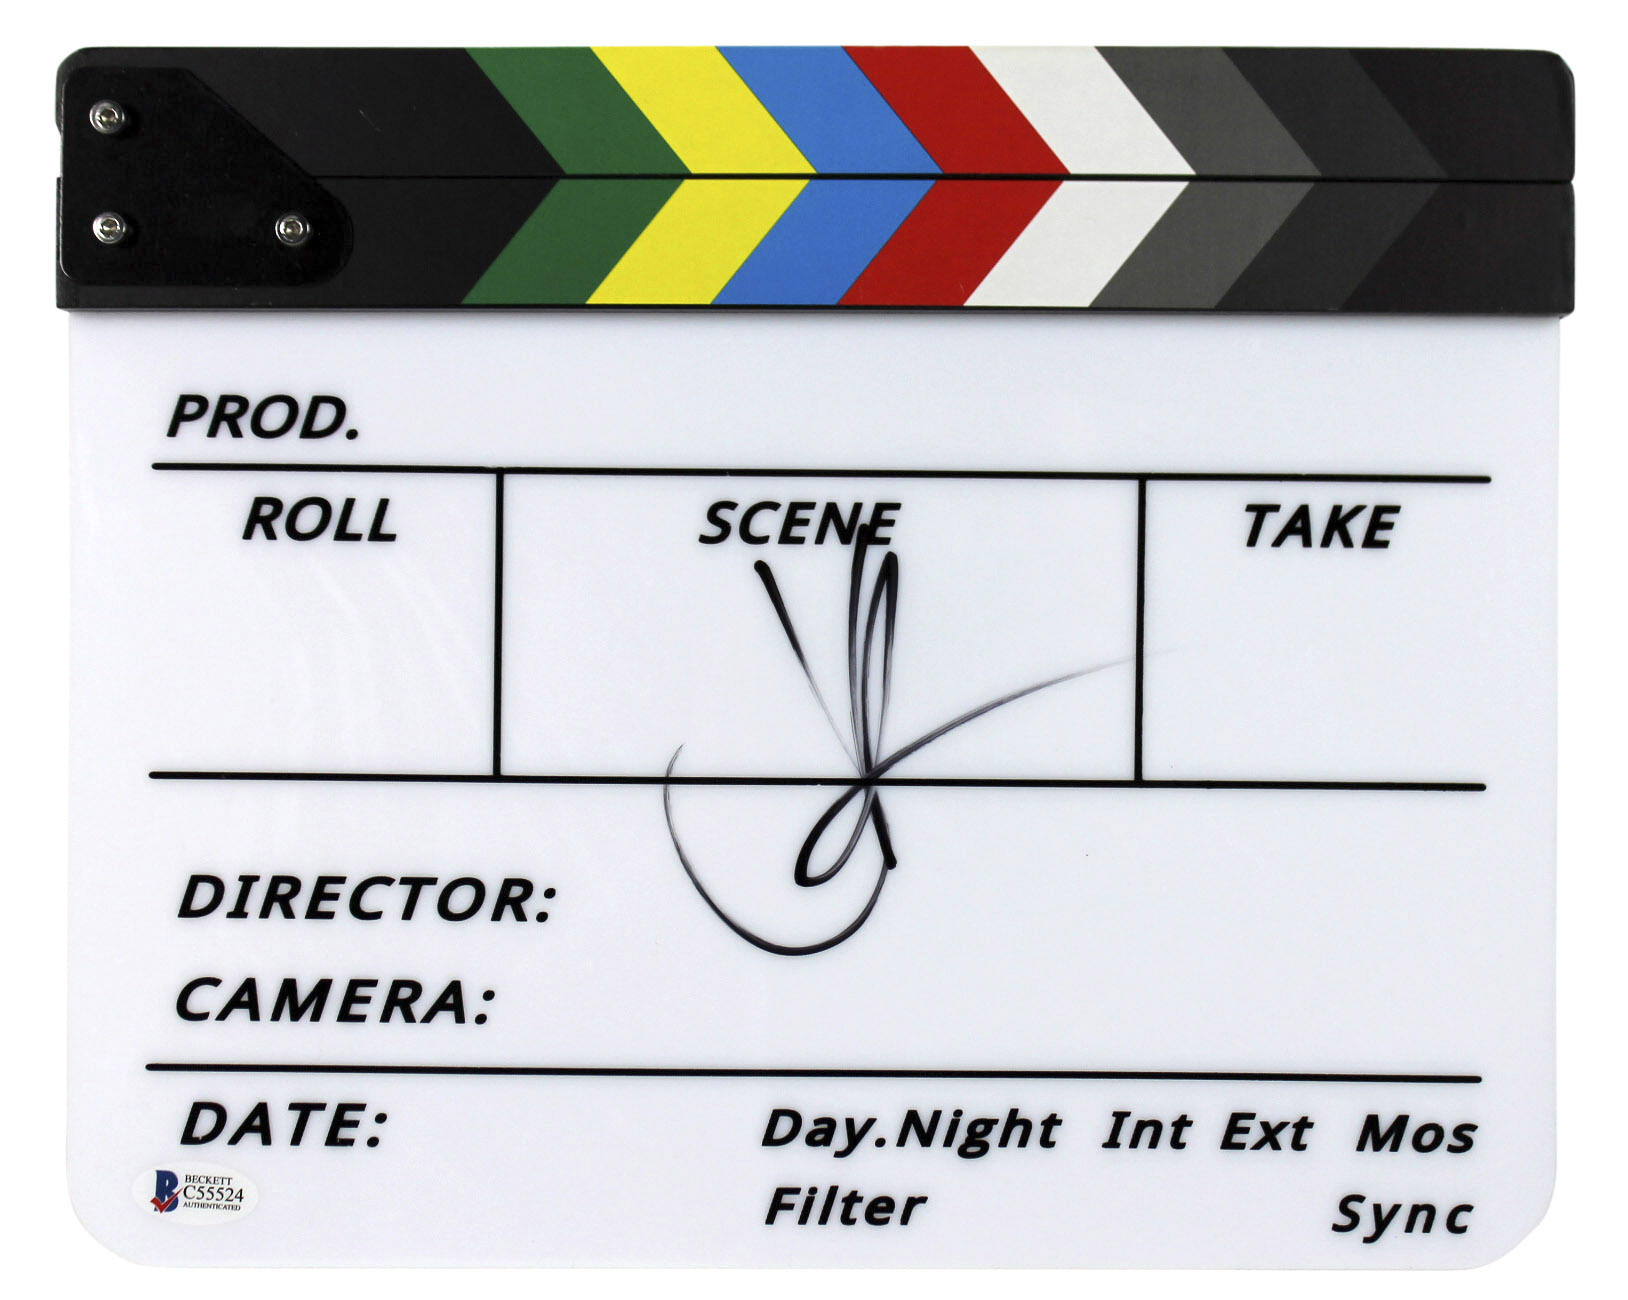 J.J. Abrams Star Wars The Force Awakens Signed Movie Clapboard BAS #C55524